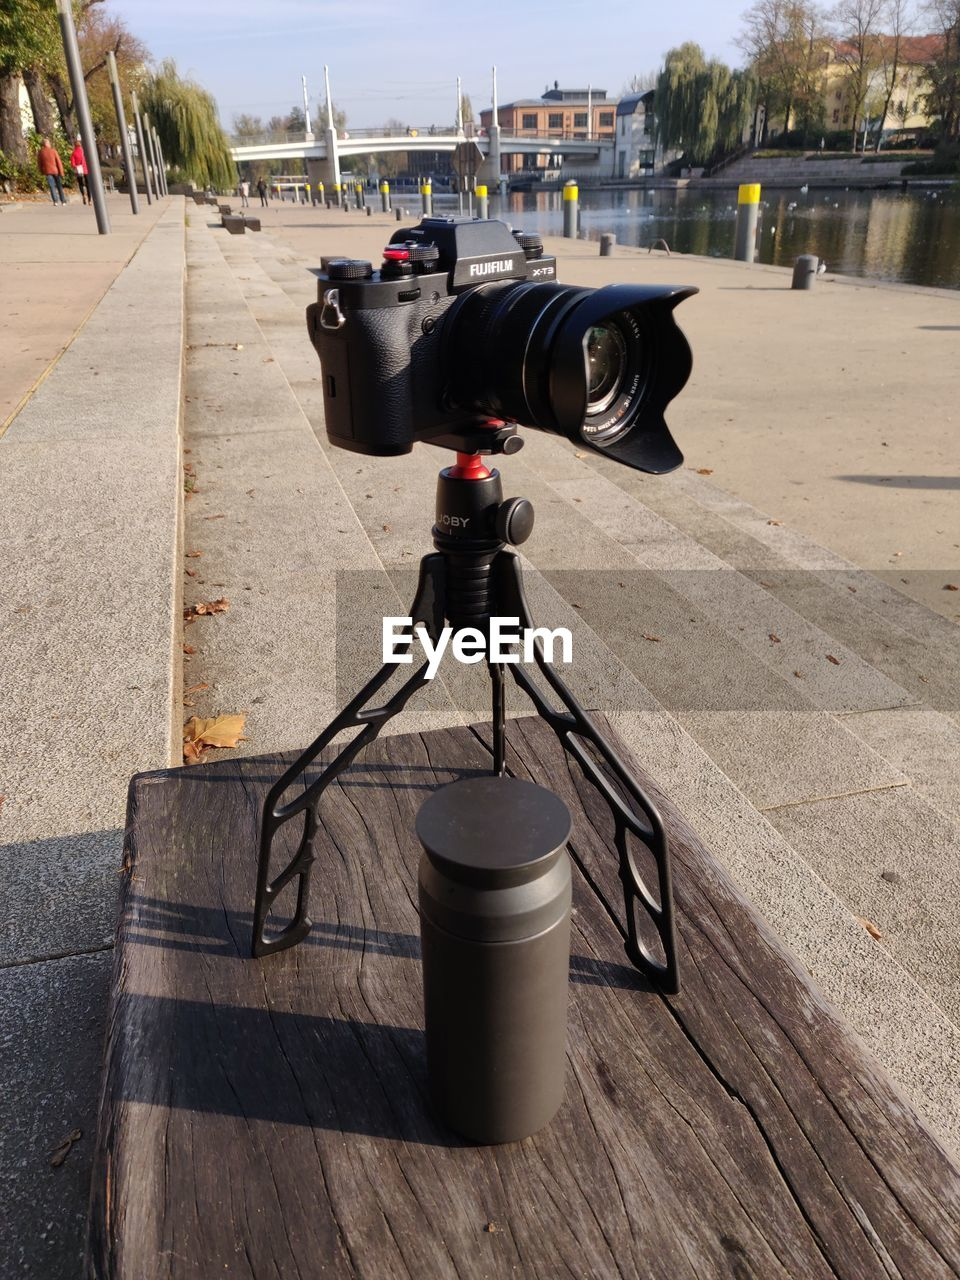 CLOSE-UP OF CAMERA ON TABLE BY STREET IN CITY